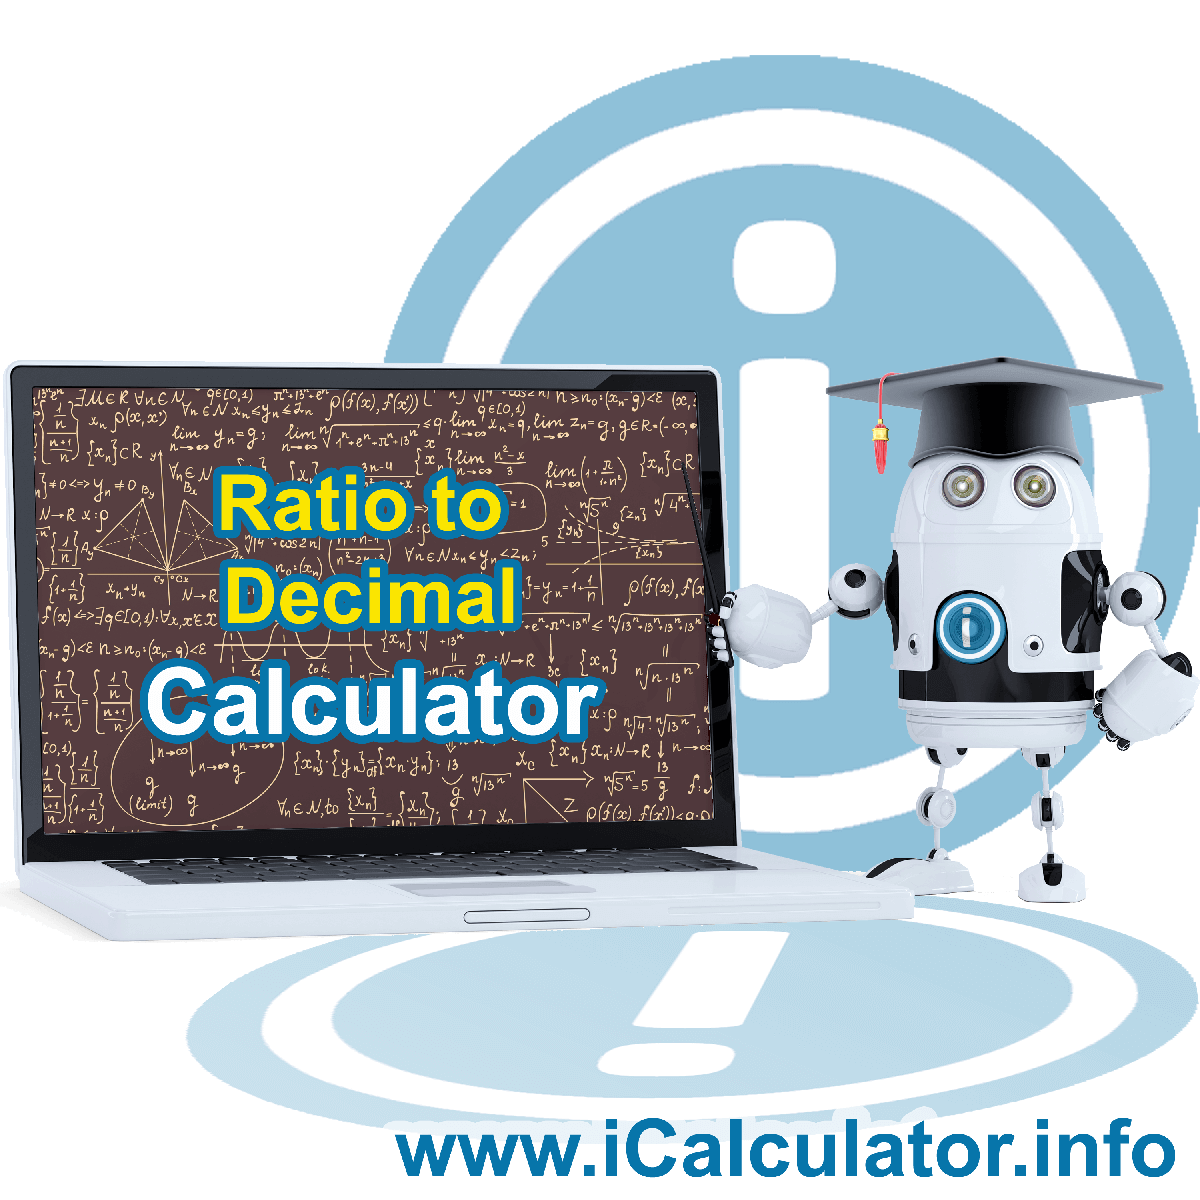 Ratio To Decimal. This image shows the properties and ratio to decimal formula for the Ratio To Decimal